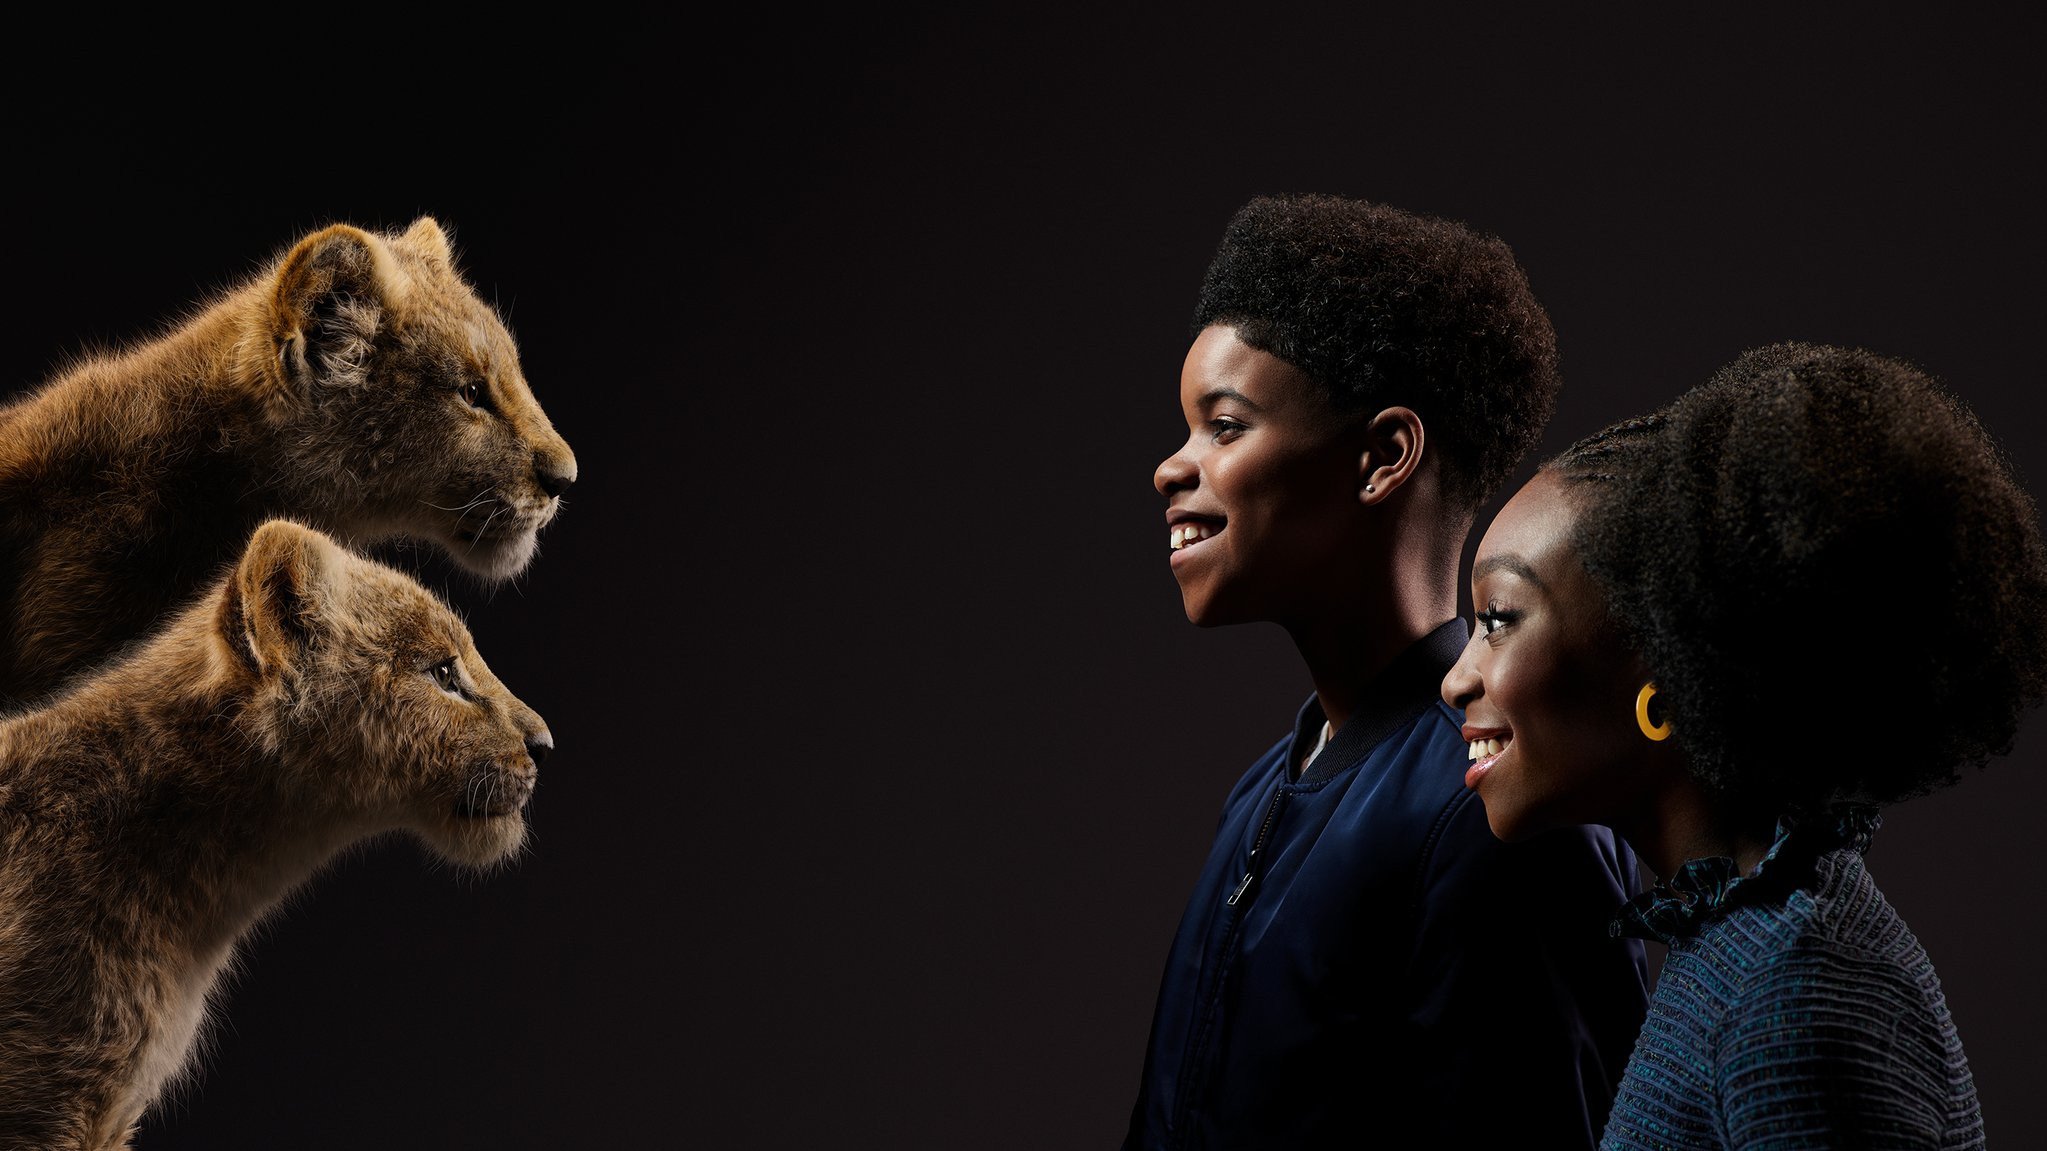 The Lion King Pride 07 - Young Simba Nala